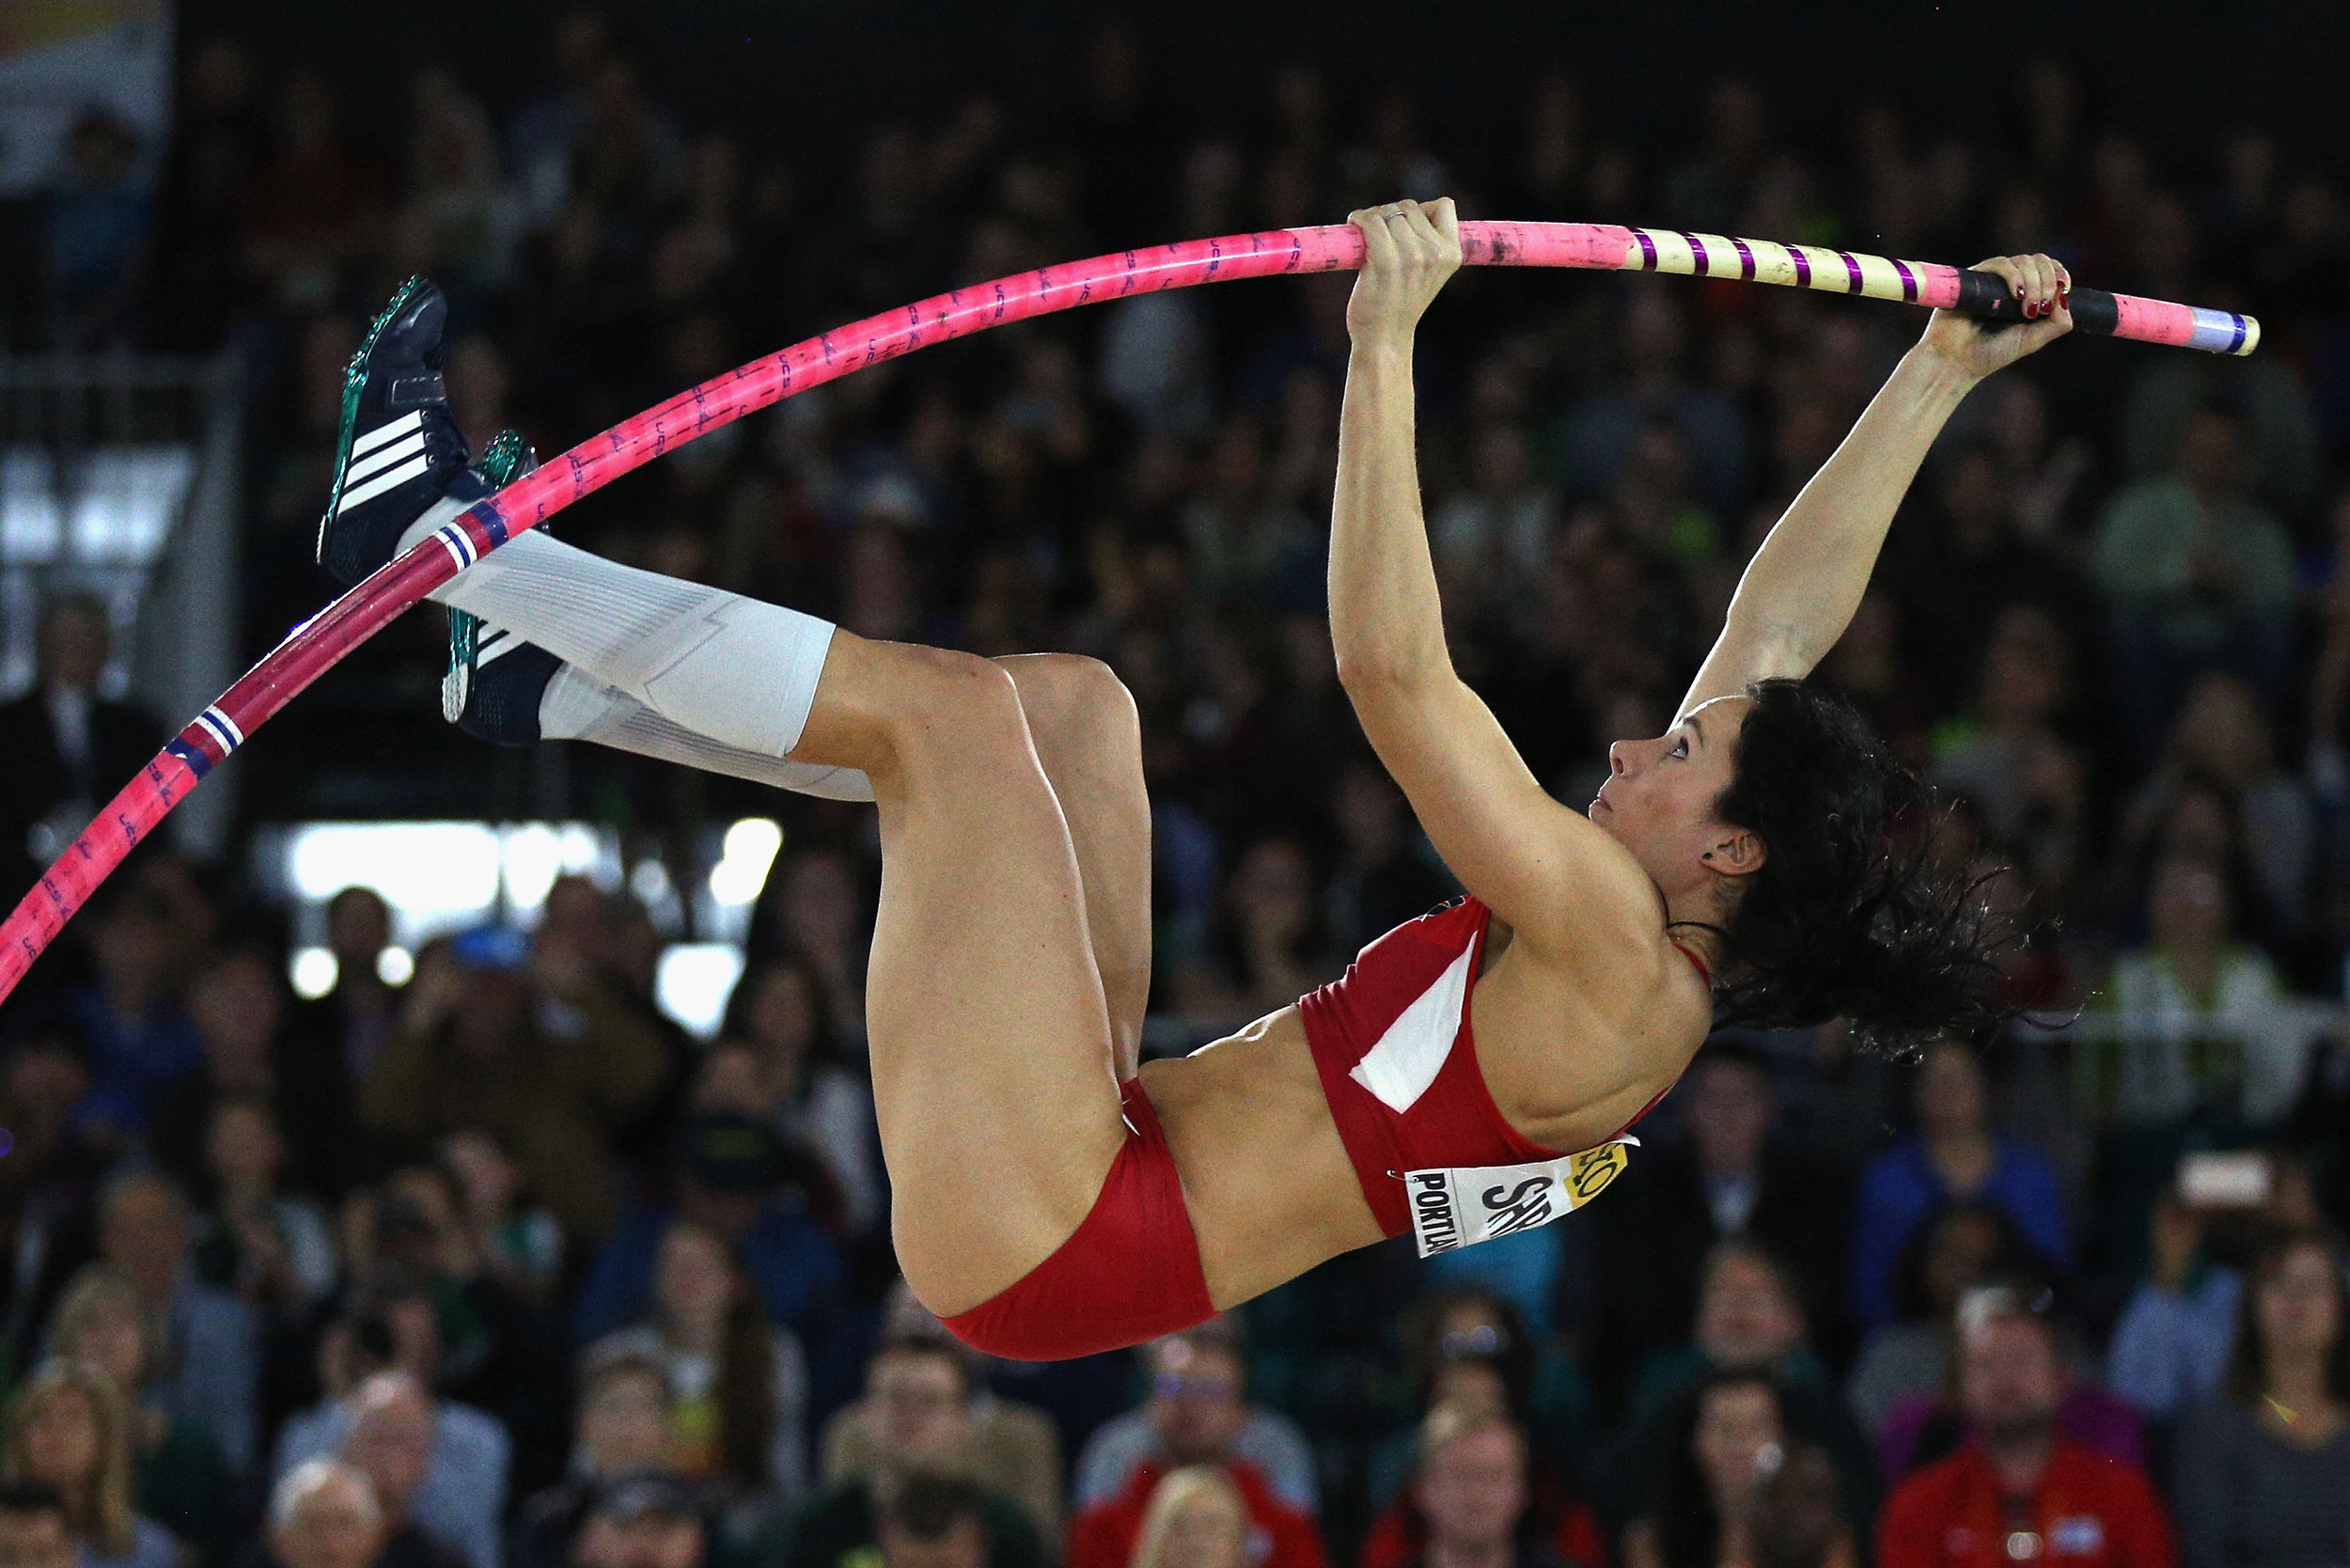 Jenn Suhr, the 2012 Olympic champion, winning 2016 world indoor gold // Getty Images for IAAF